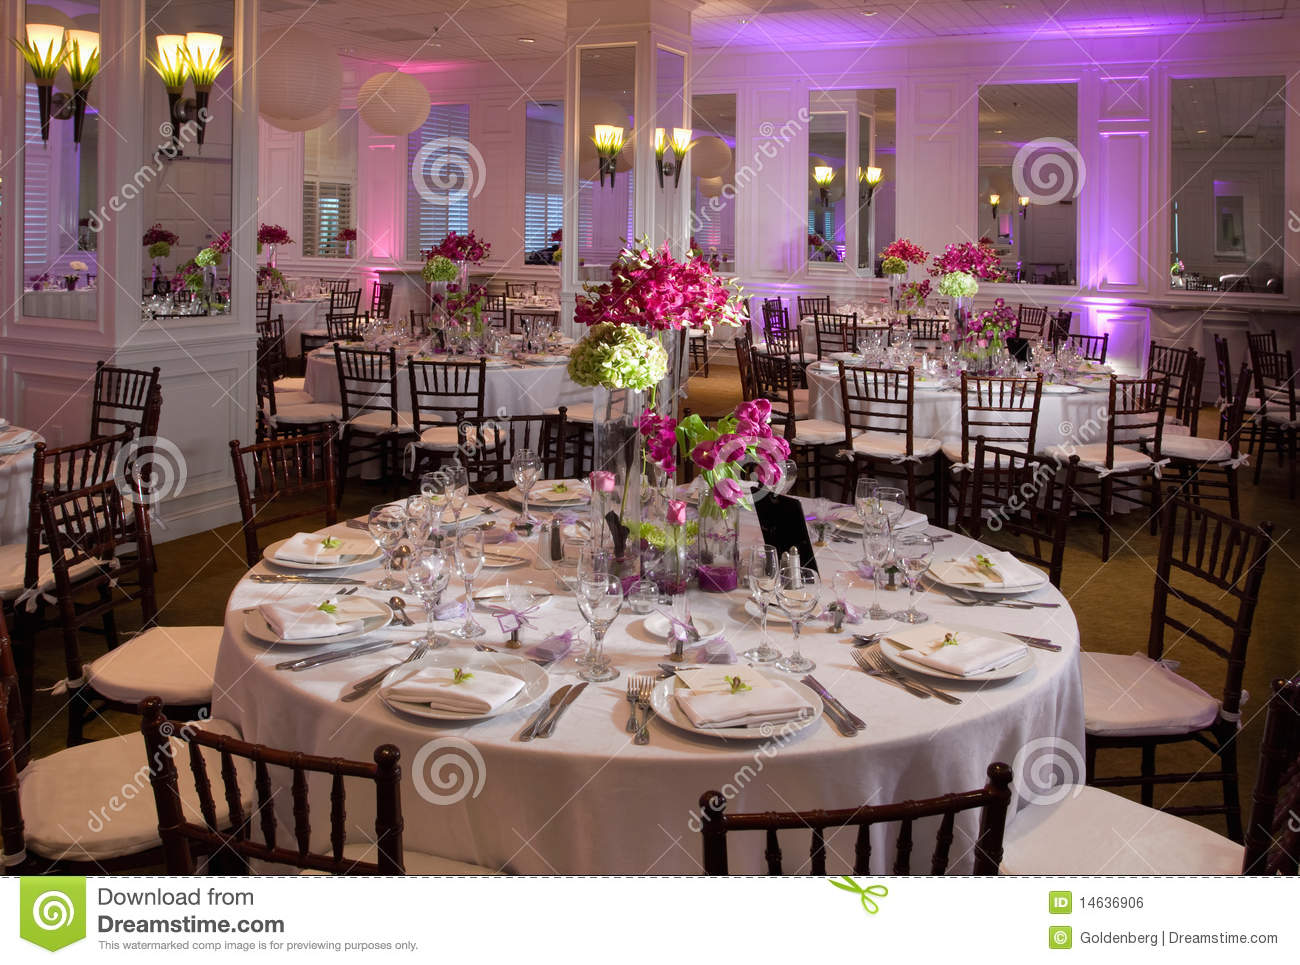 Wedding Table Royalty Free Stock Image - Image: 14636906